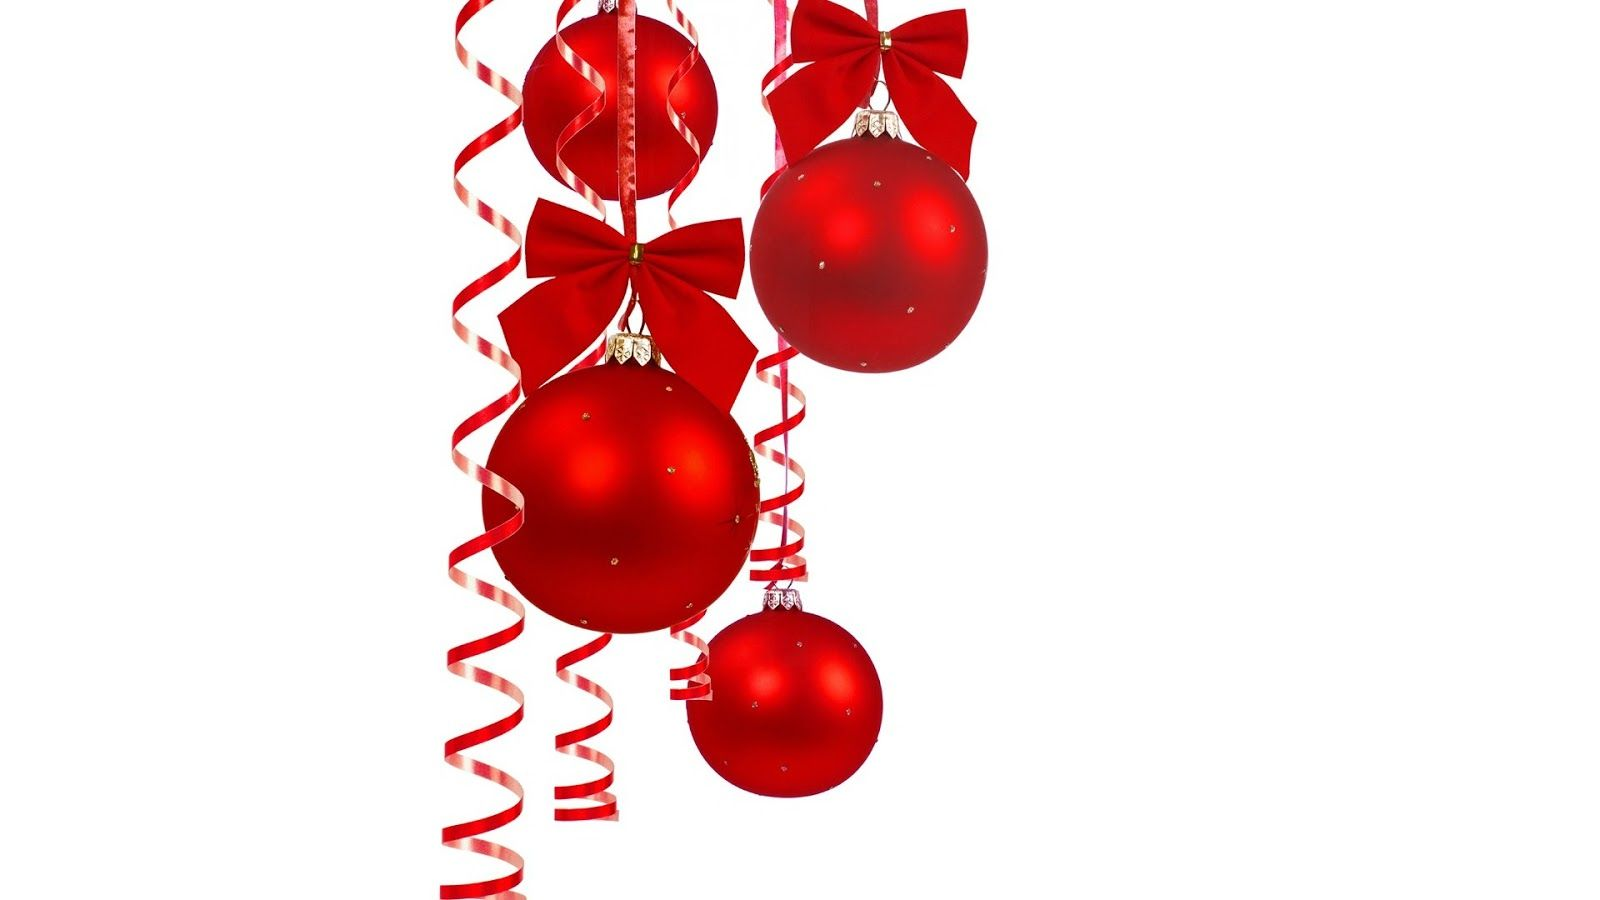 Christmas decorations borders - Free Christmas Borders Clipart Of Christmas Borders Christmas Border Clip Art Free Image For Your Personal Projects Presentations Or Web Designs